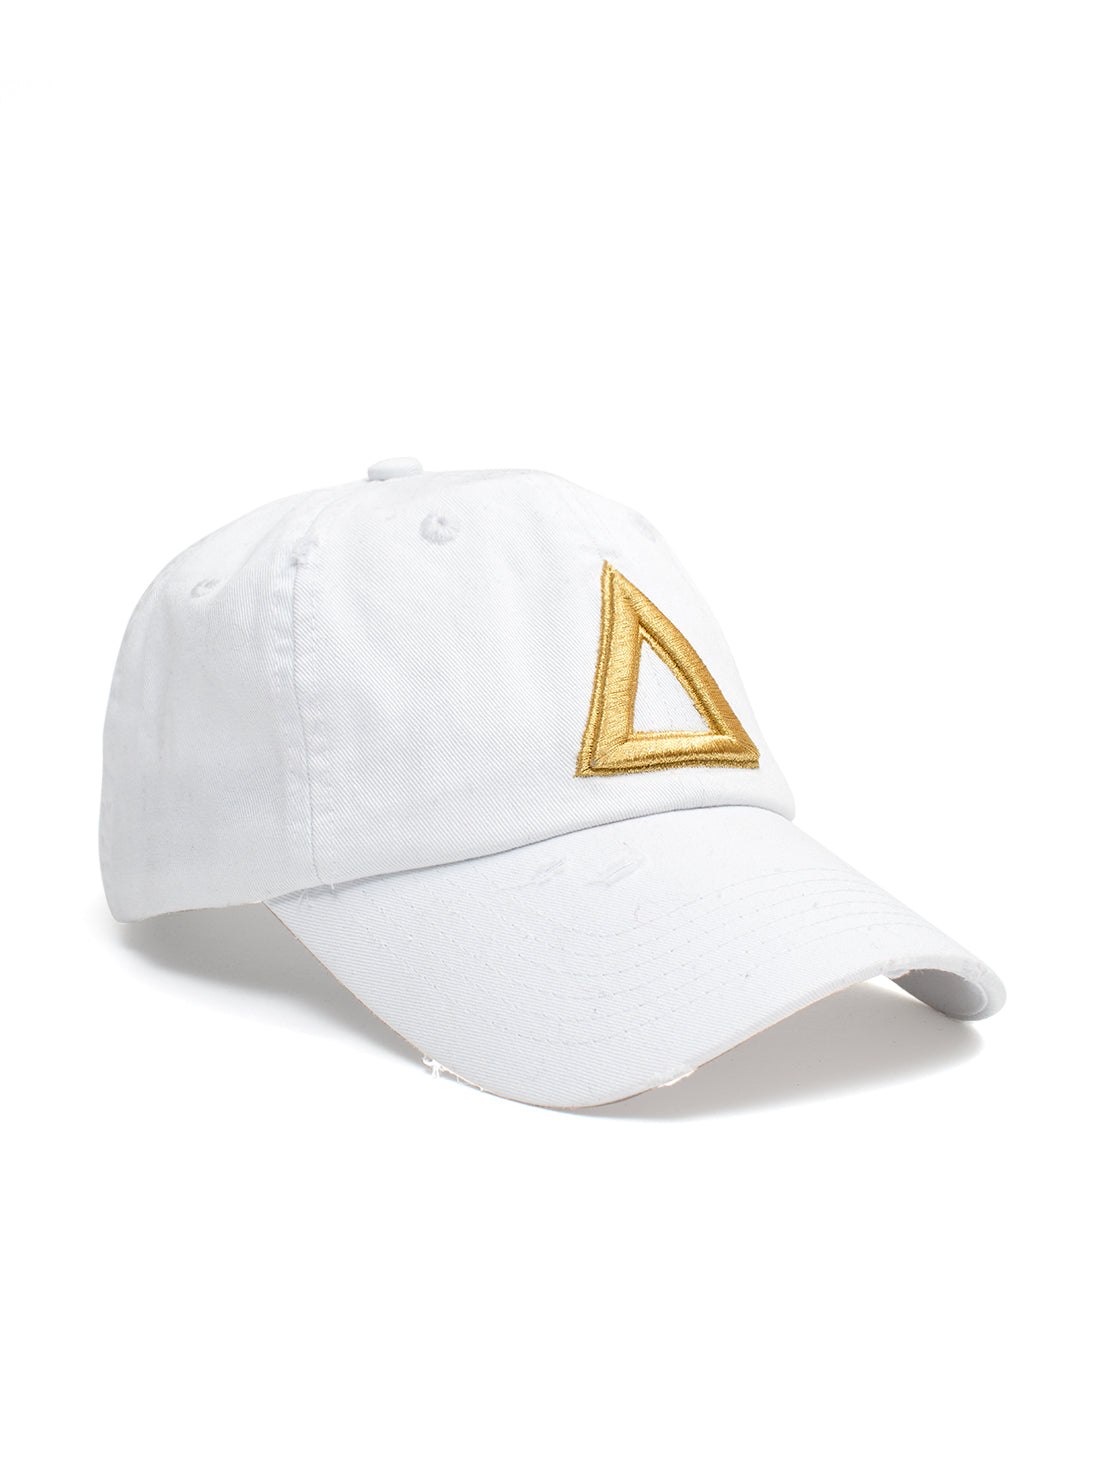 DISTRESS DAD HAT WHITE - GOLD TRI